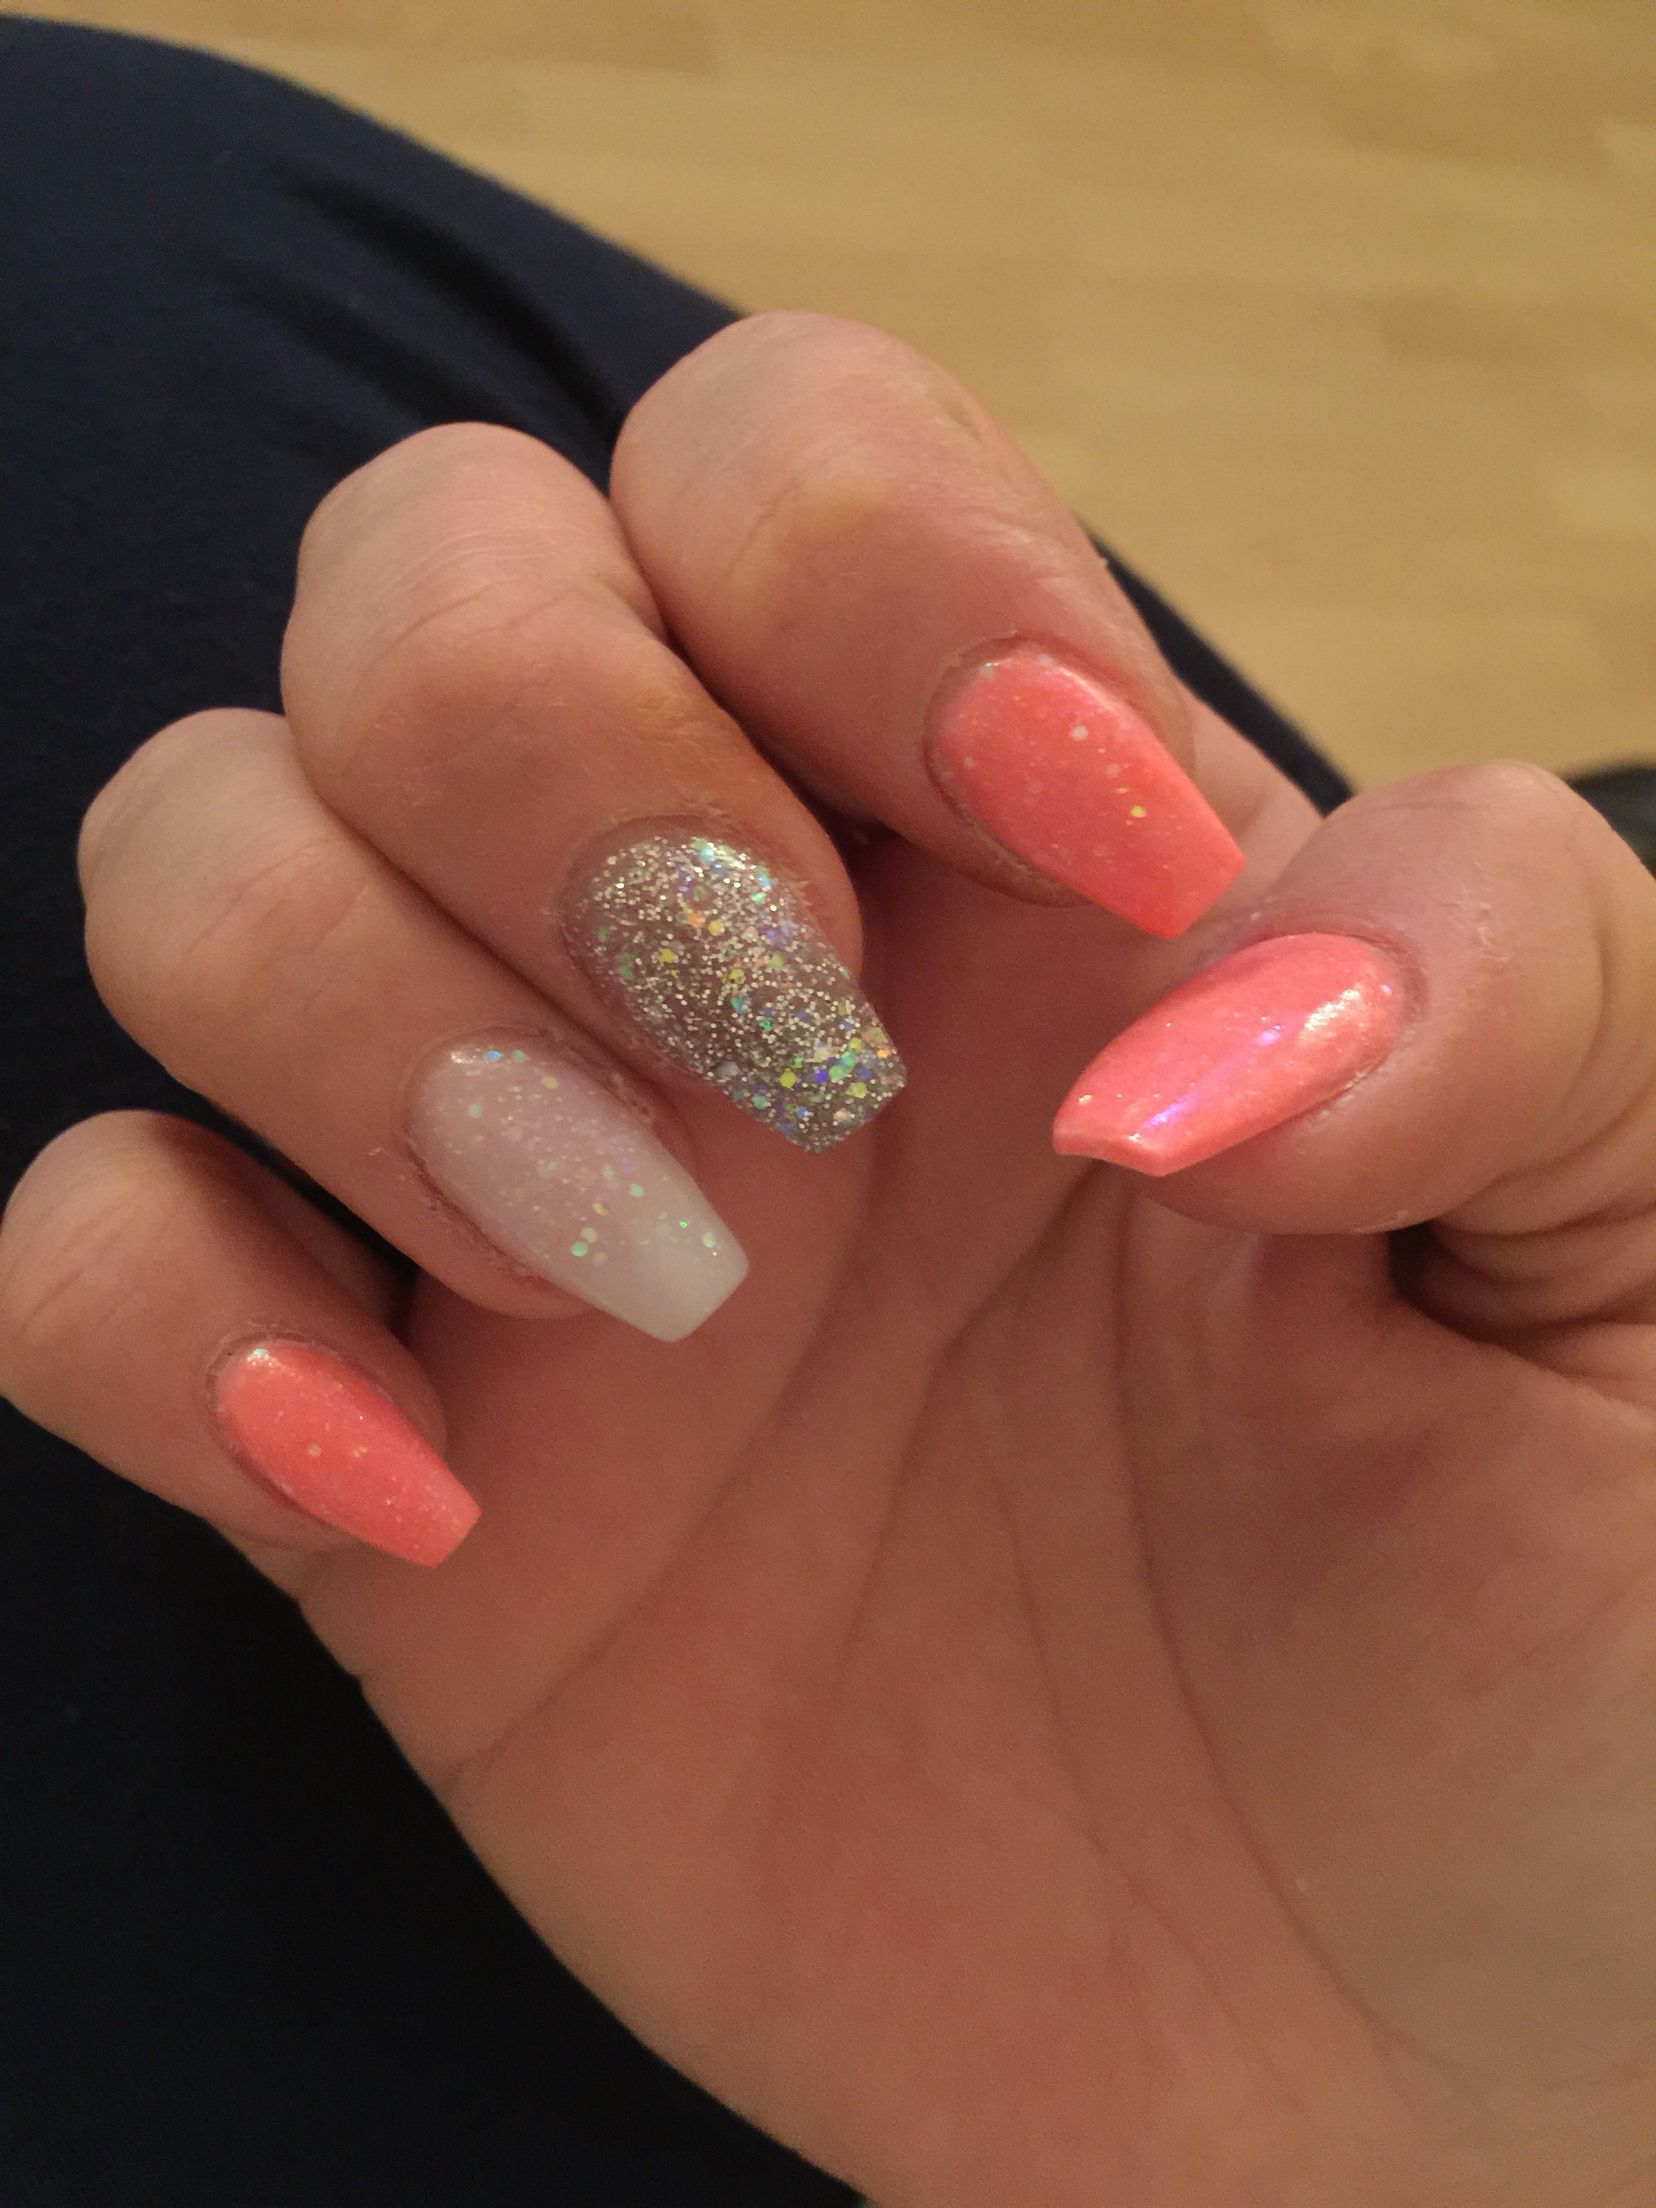 Square Acrylic Summer Is Here Acrylic Nails Summer Acrylic